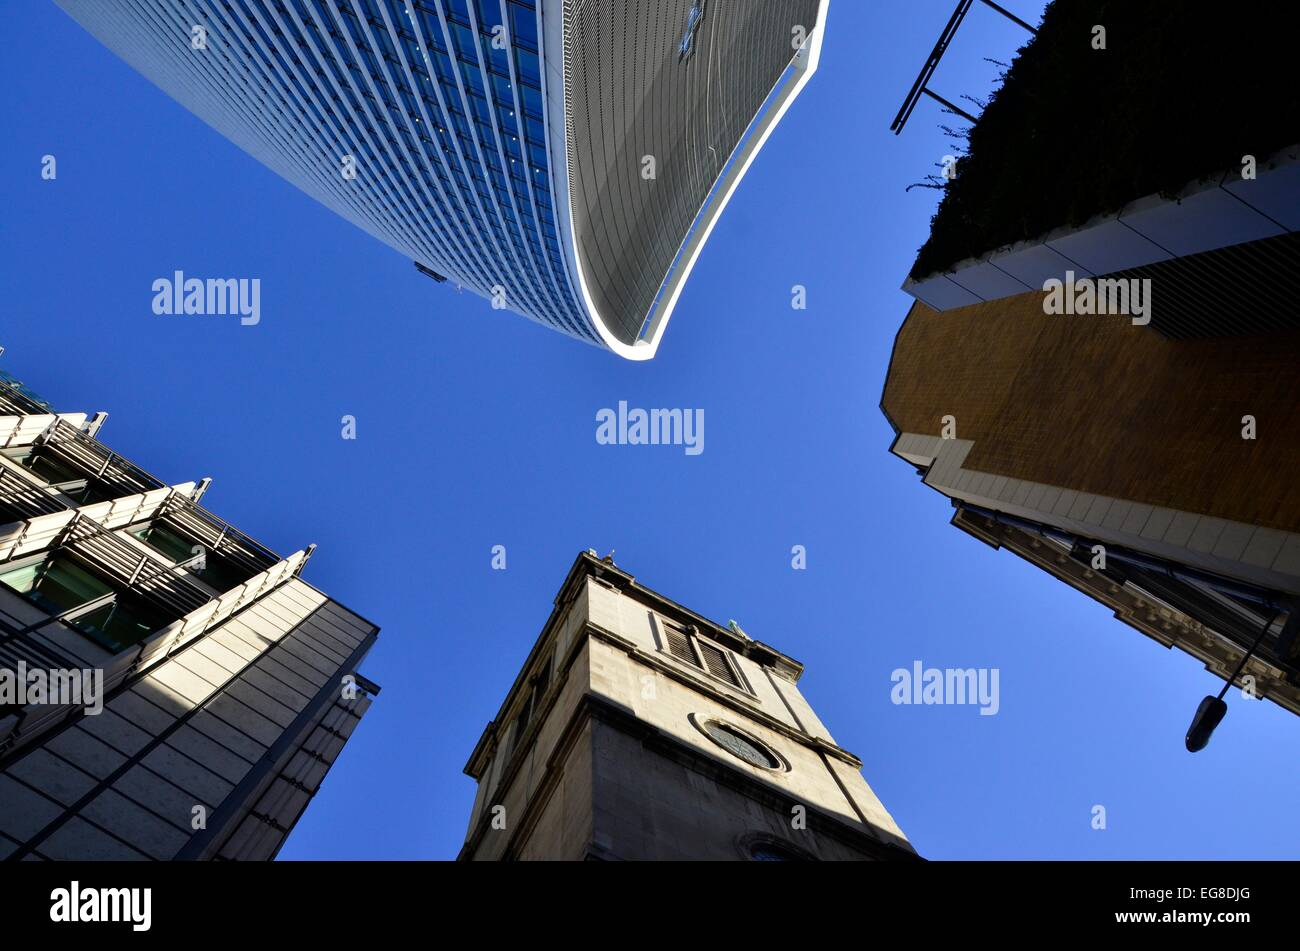 Looking Up on Fenchurch Street, City of London - featuring Wren's St Margaret Pattens Church and the Walkie - Stock Image